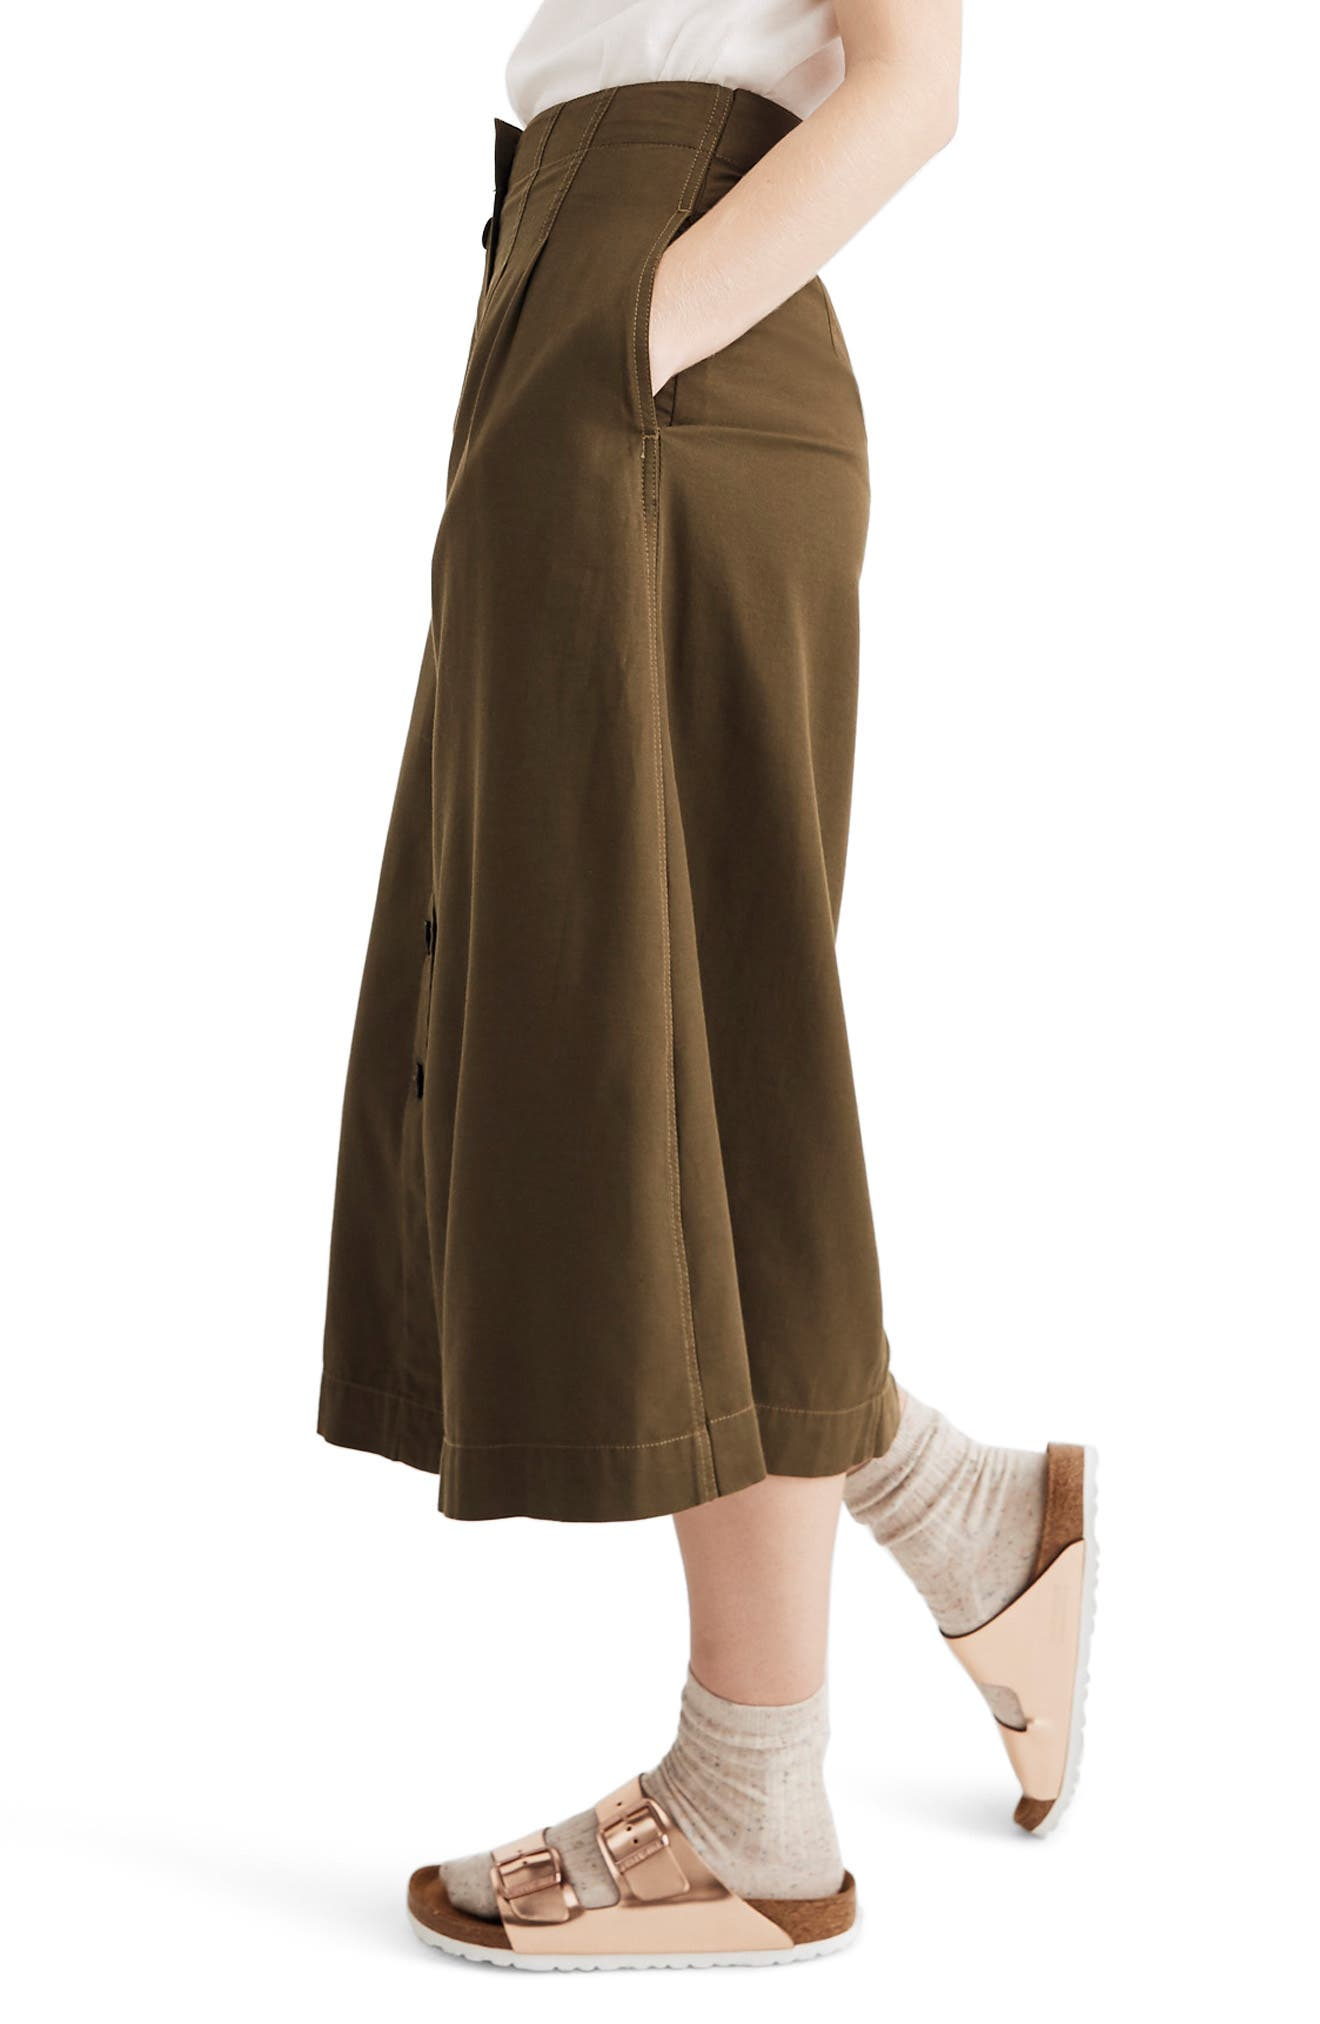 MADEWELL, Patio Button Front Midi Skirt, Alternate thumbnail 3, color, KALE